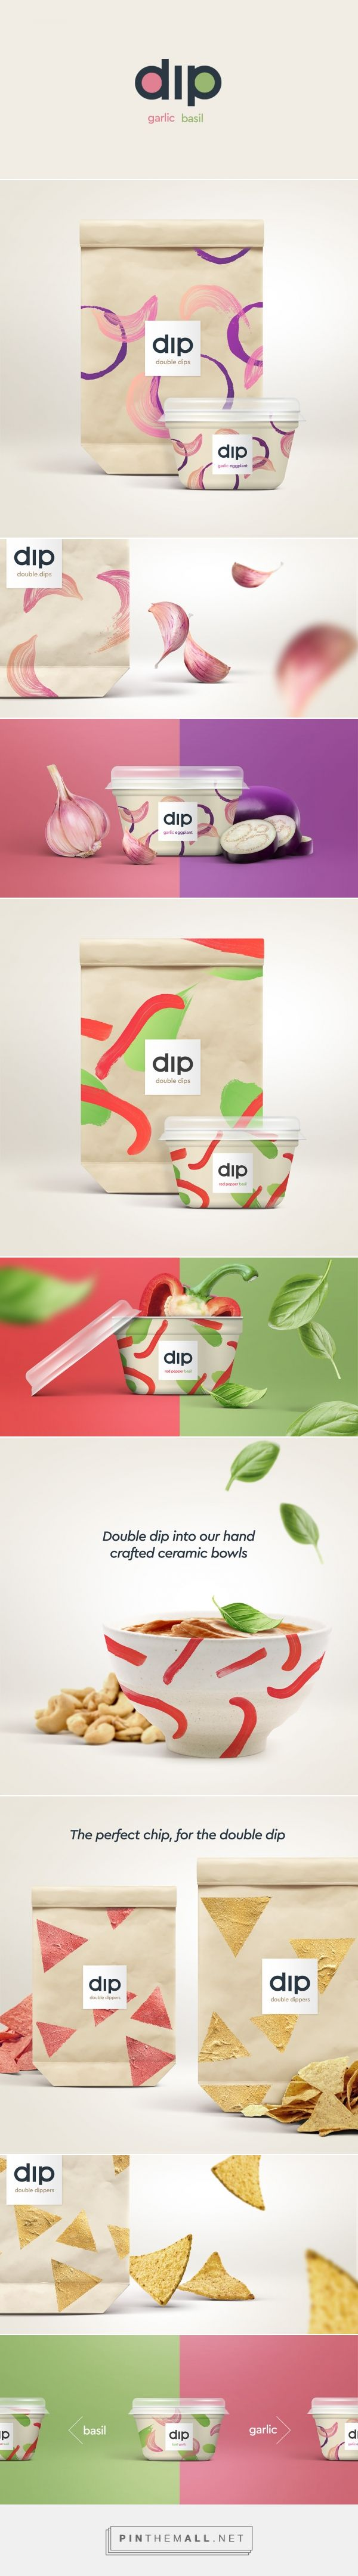 Double Dips Premium Dip Packaging by Joe Temple | Fivestar Branding Agency – Design and Branding Agency & Curated Inspiration Gallery